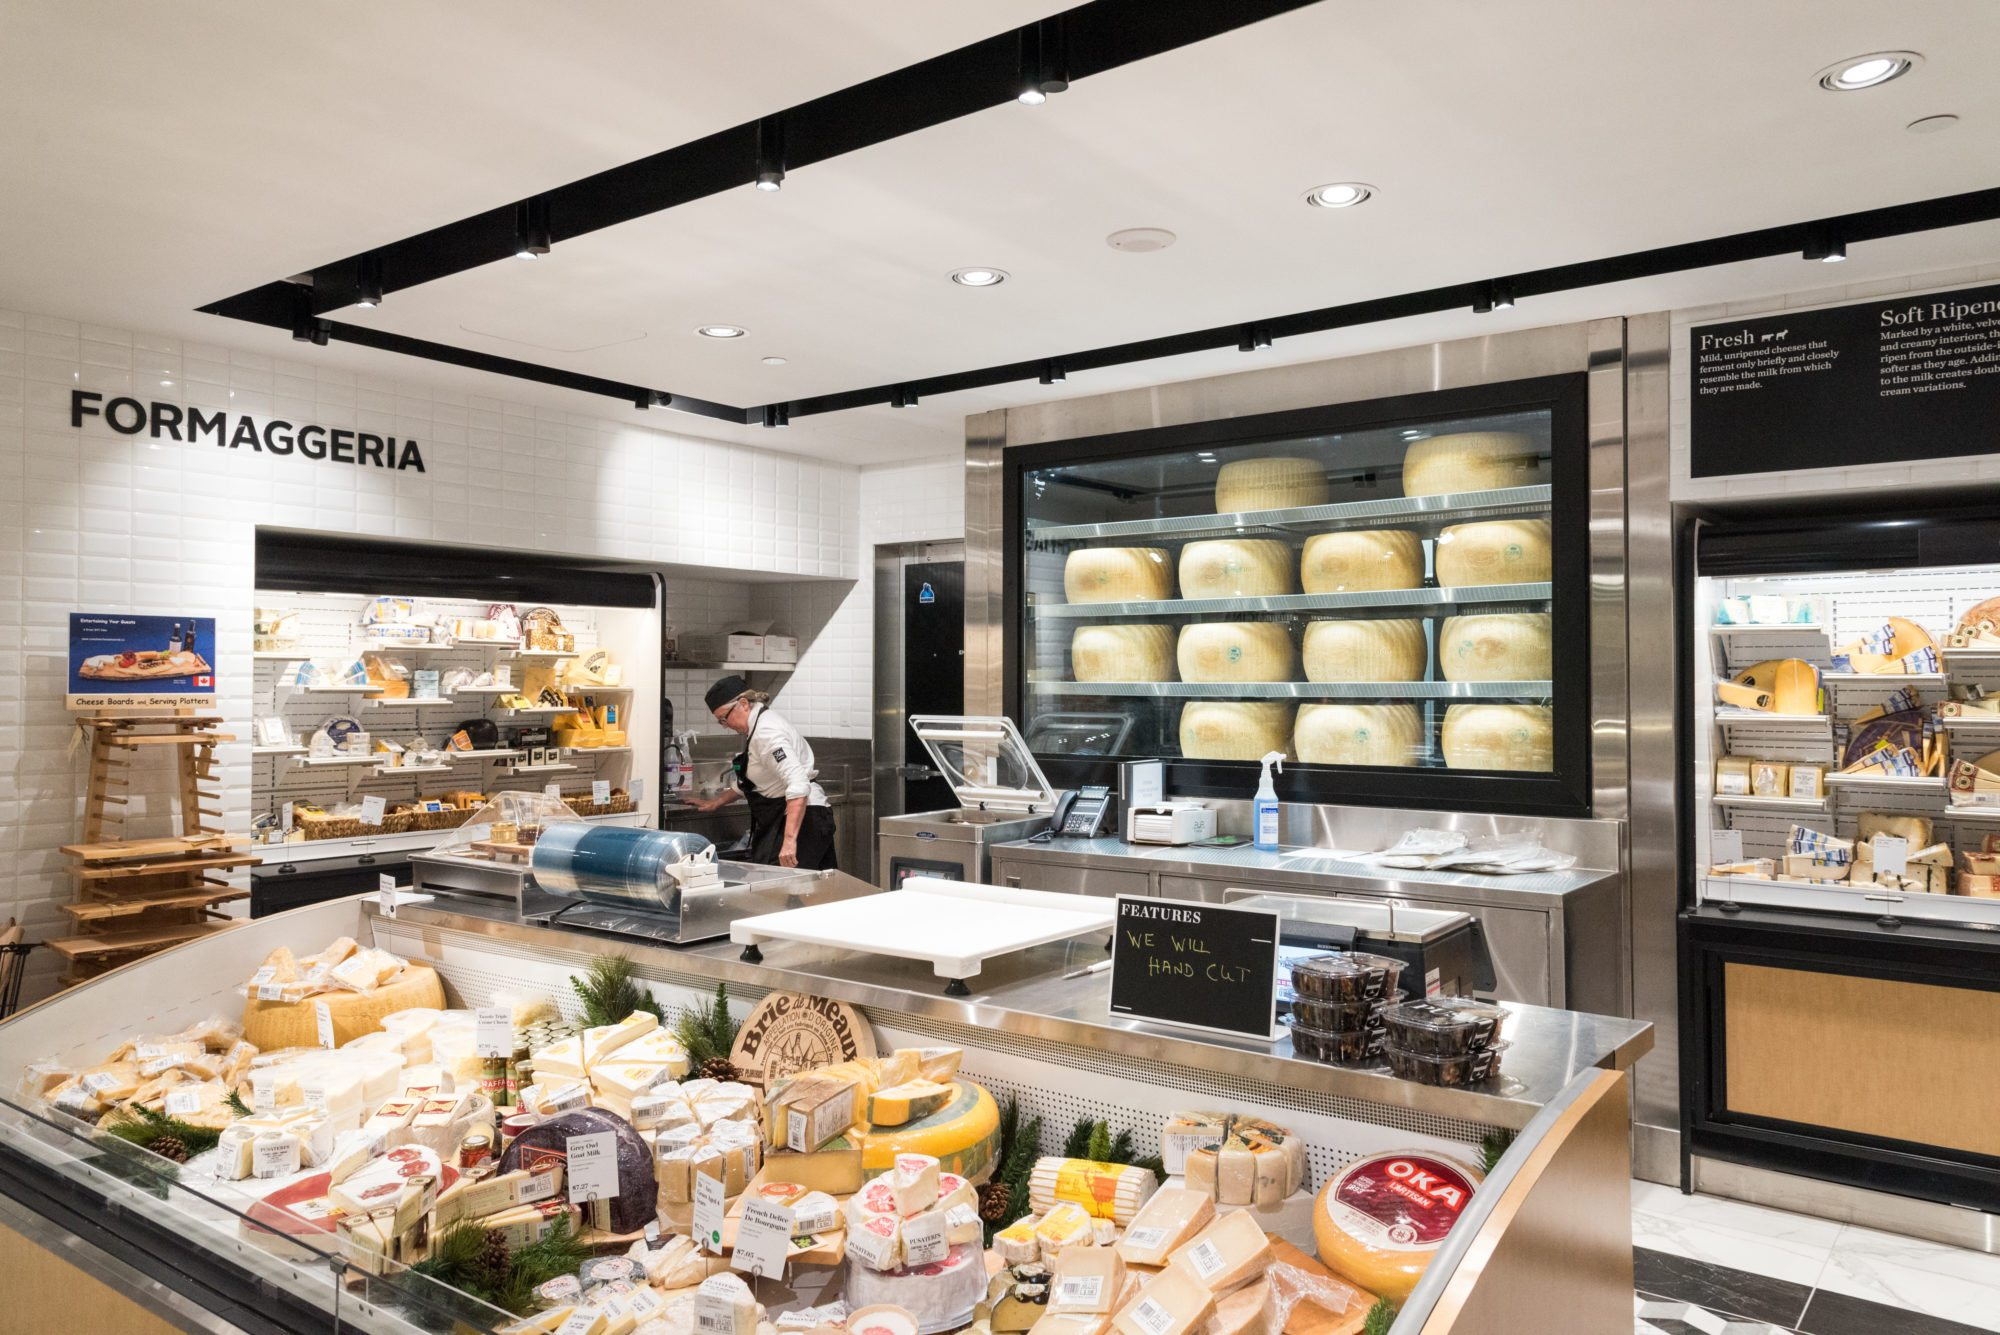 toronto-food-shops-pusateris-food-hall-saks-fifth-avenue-eaton-centre-cheese-fromaggeria